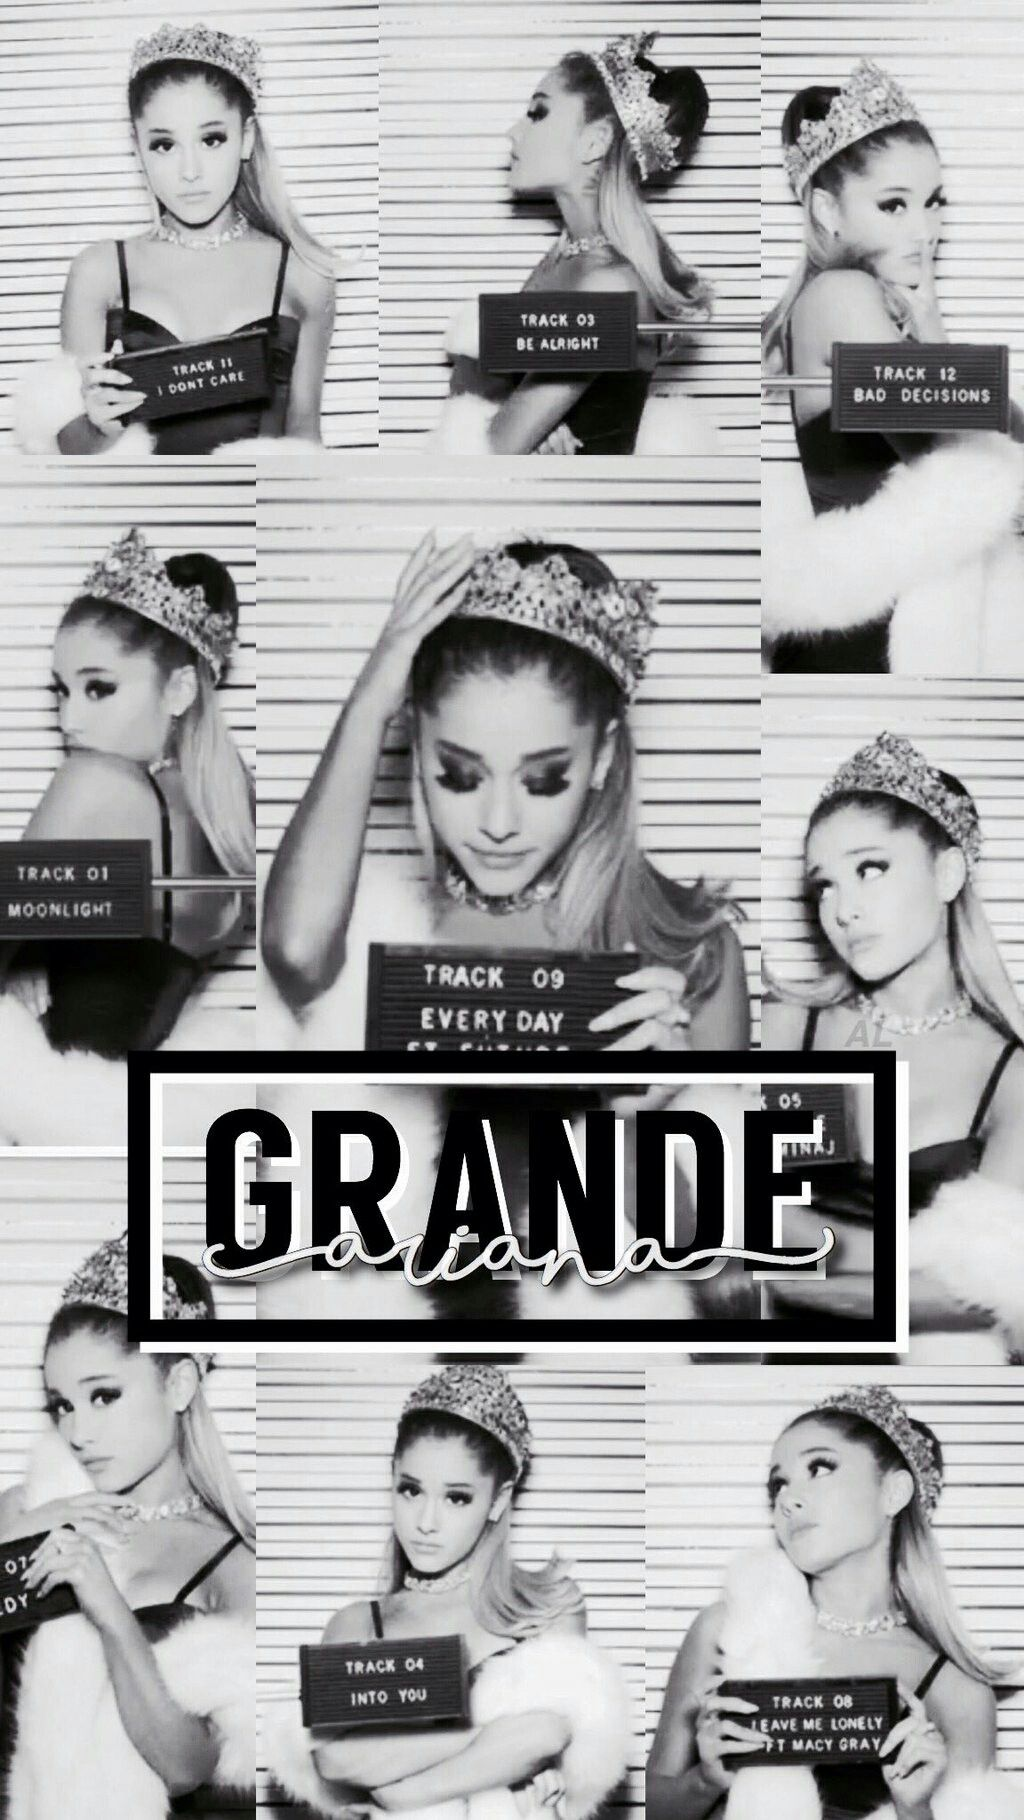 Ariana Grande Dangerous Wallpaper Quotes Iphone Wallpapers O Instagram